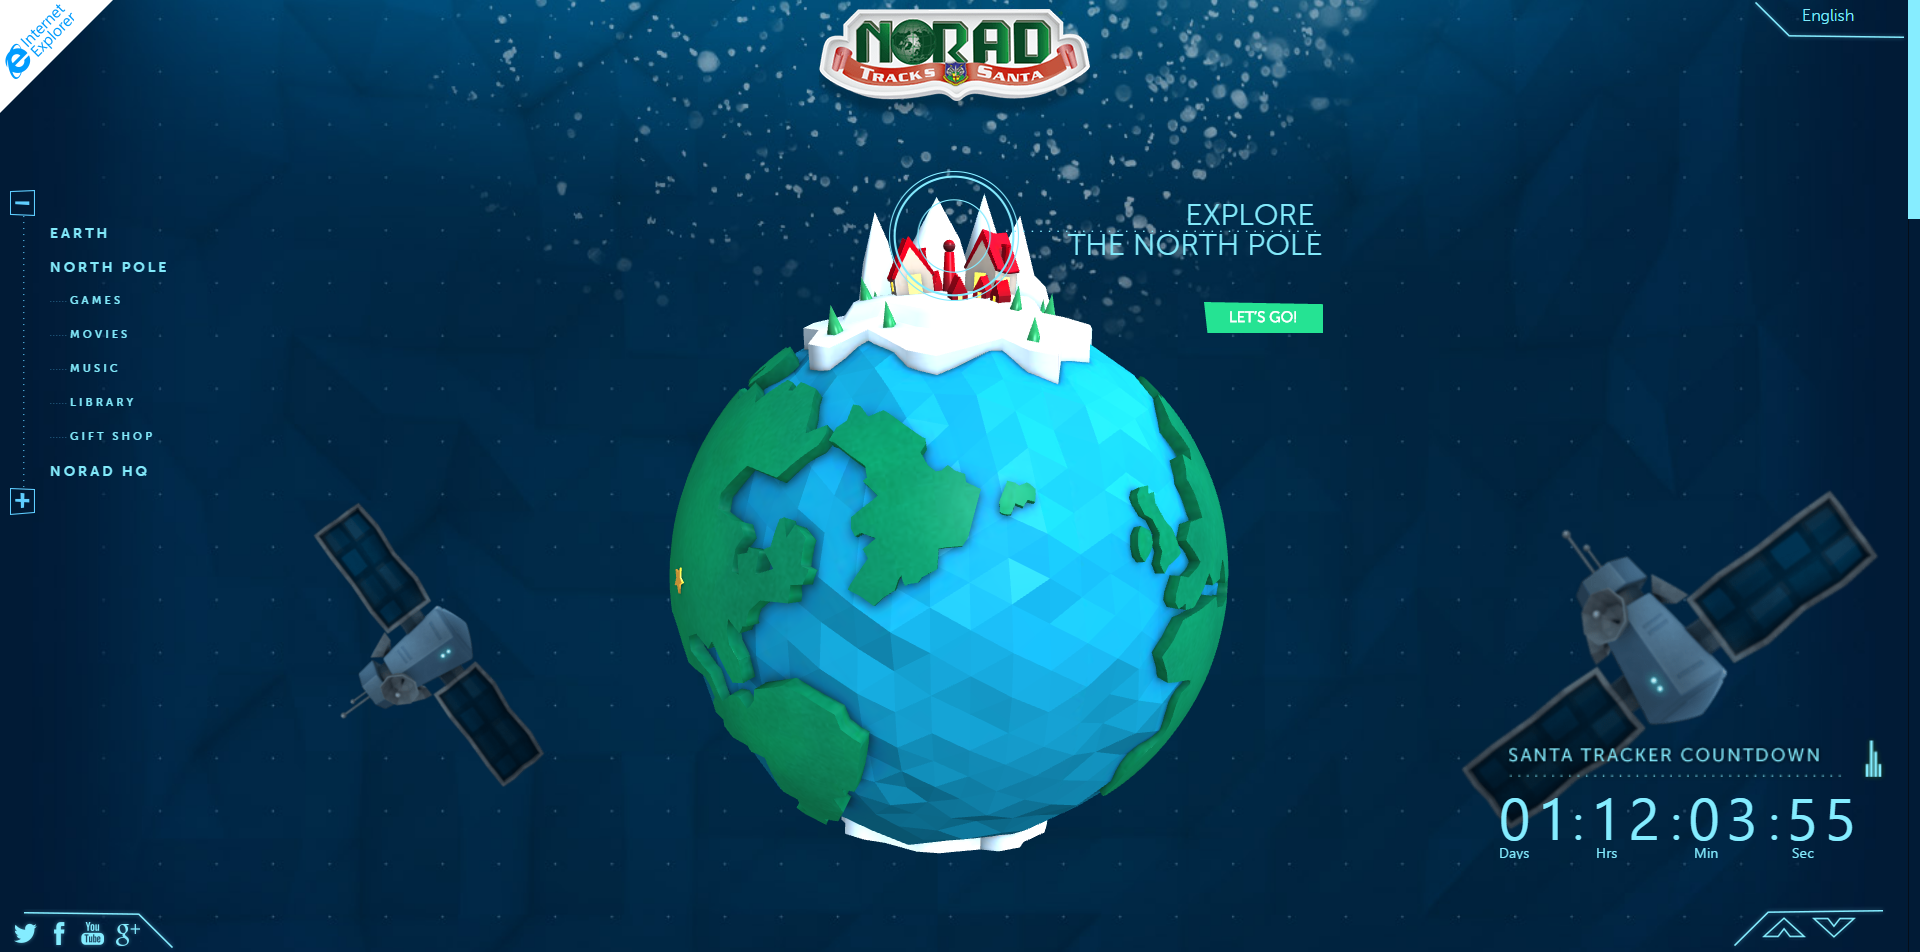 the official norad santa tracker website powered by microsoft